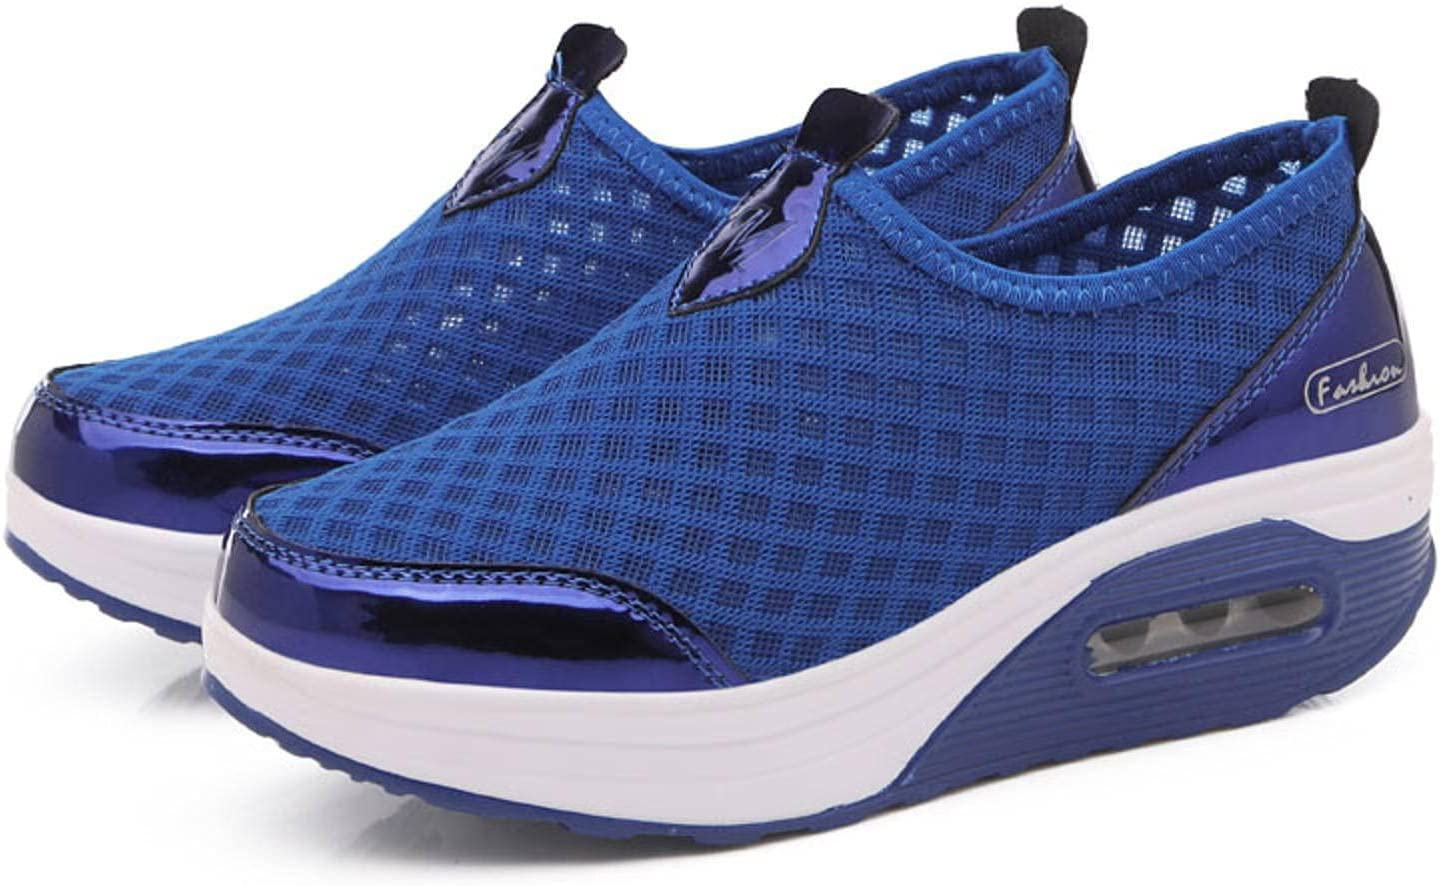 NC Women's Shoes Casual Walking Shoes Fashion Running Breathable Mesh Shoes Shock Absorption Pull-on Sneakers